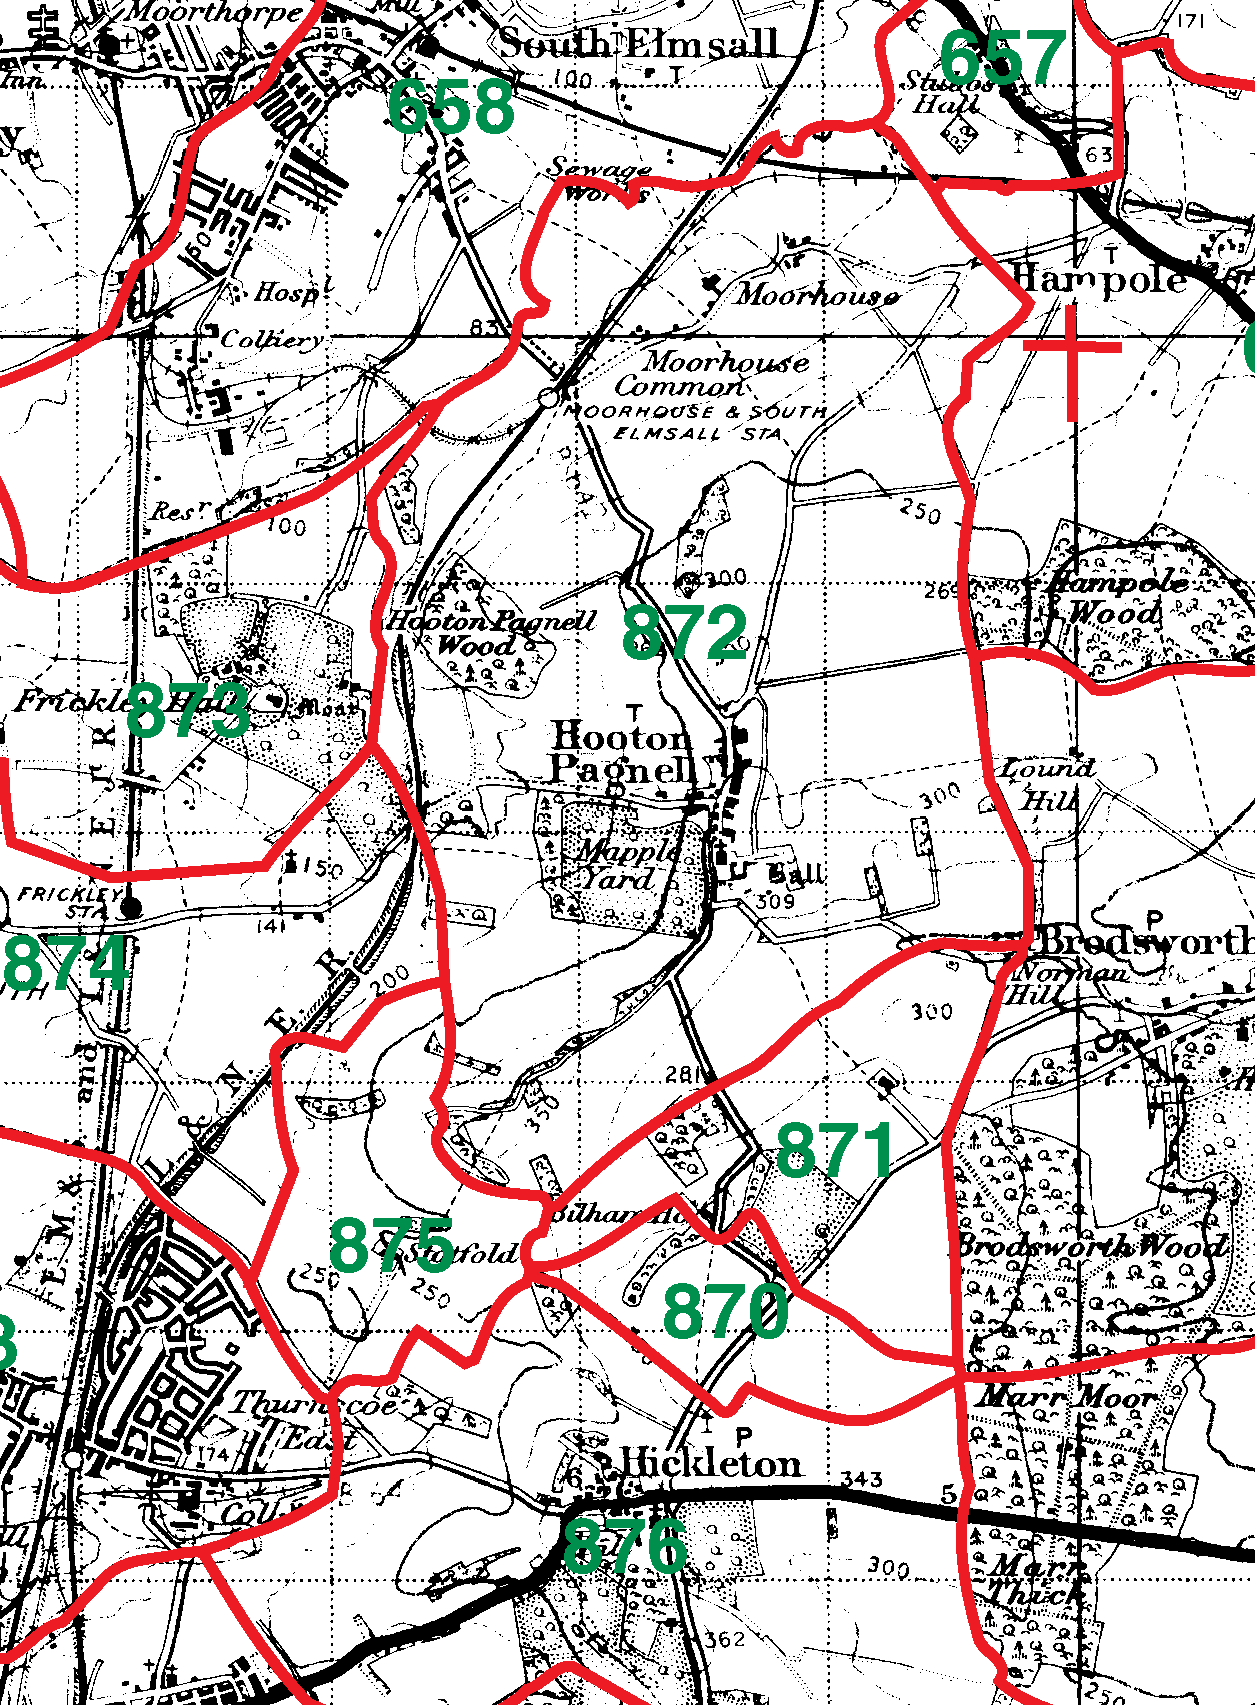 Hooton Pagnell boundaries map